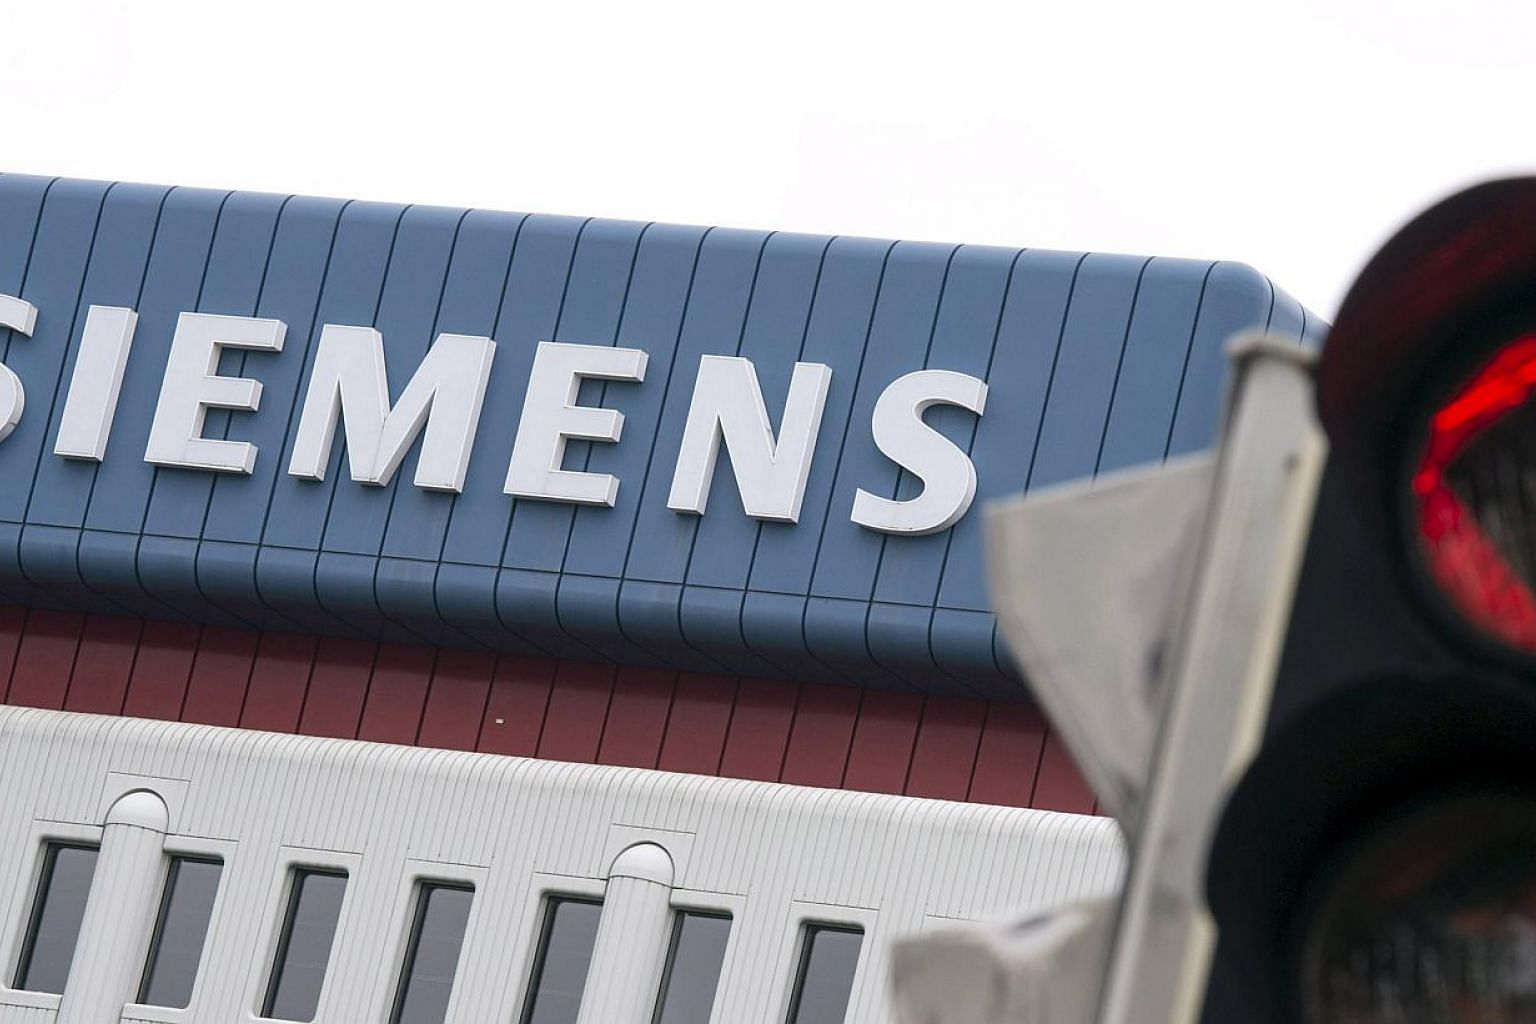 Siemens, Europe's largest engineering company, will cut another 4,500 jobs after second-quarter profit fell more than estimated by analysts, burdened by the declining oil price. -- PHOTO: REUTERS